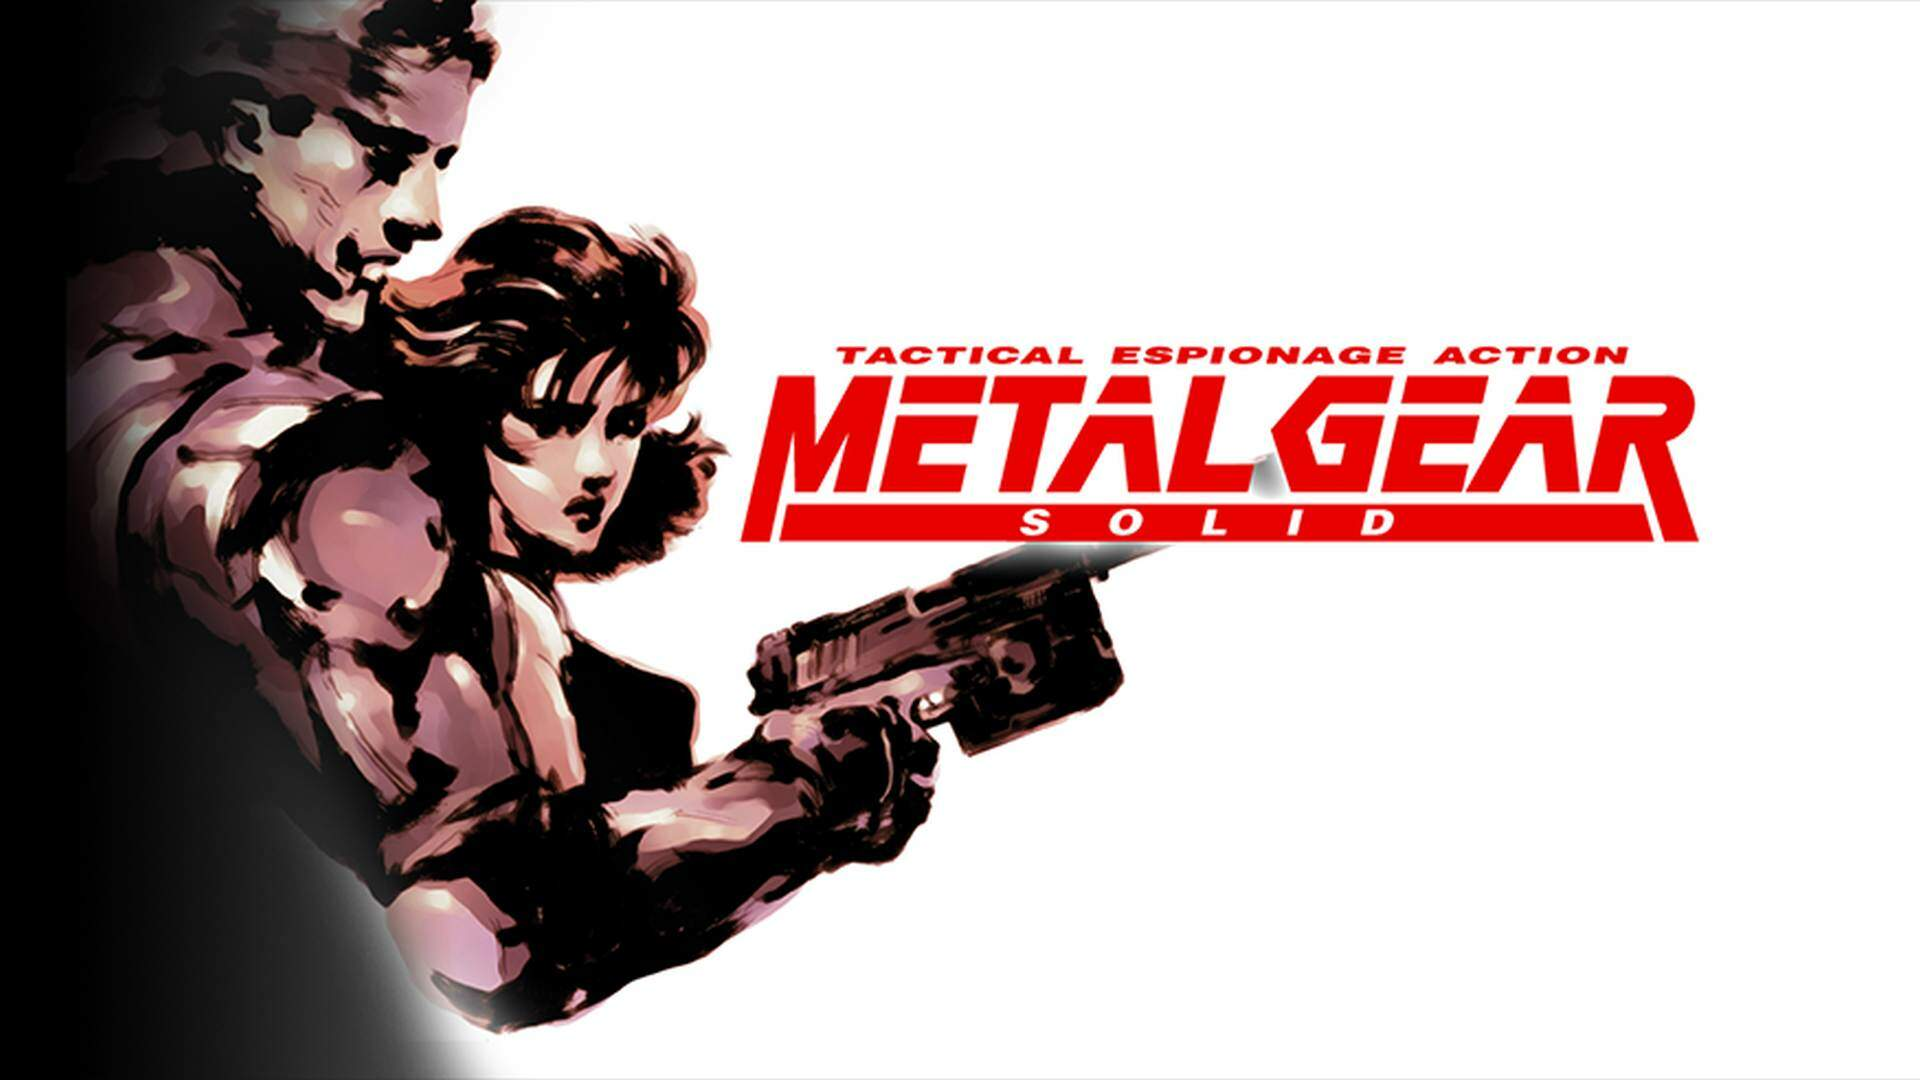 A Few Classic Metal Gear Games Are Now on GOG